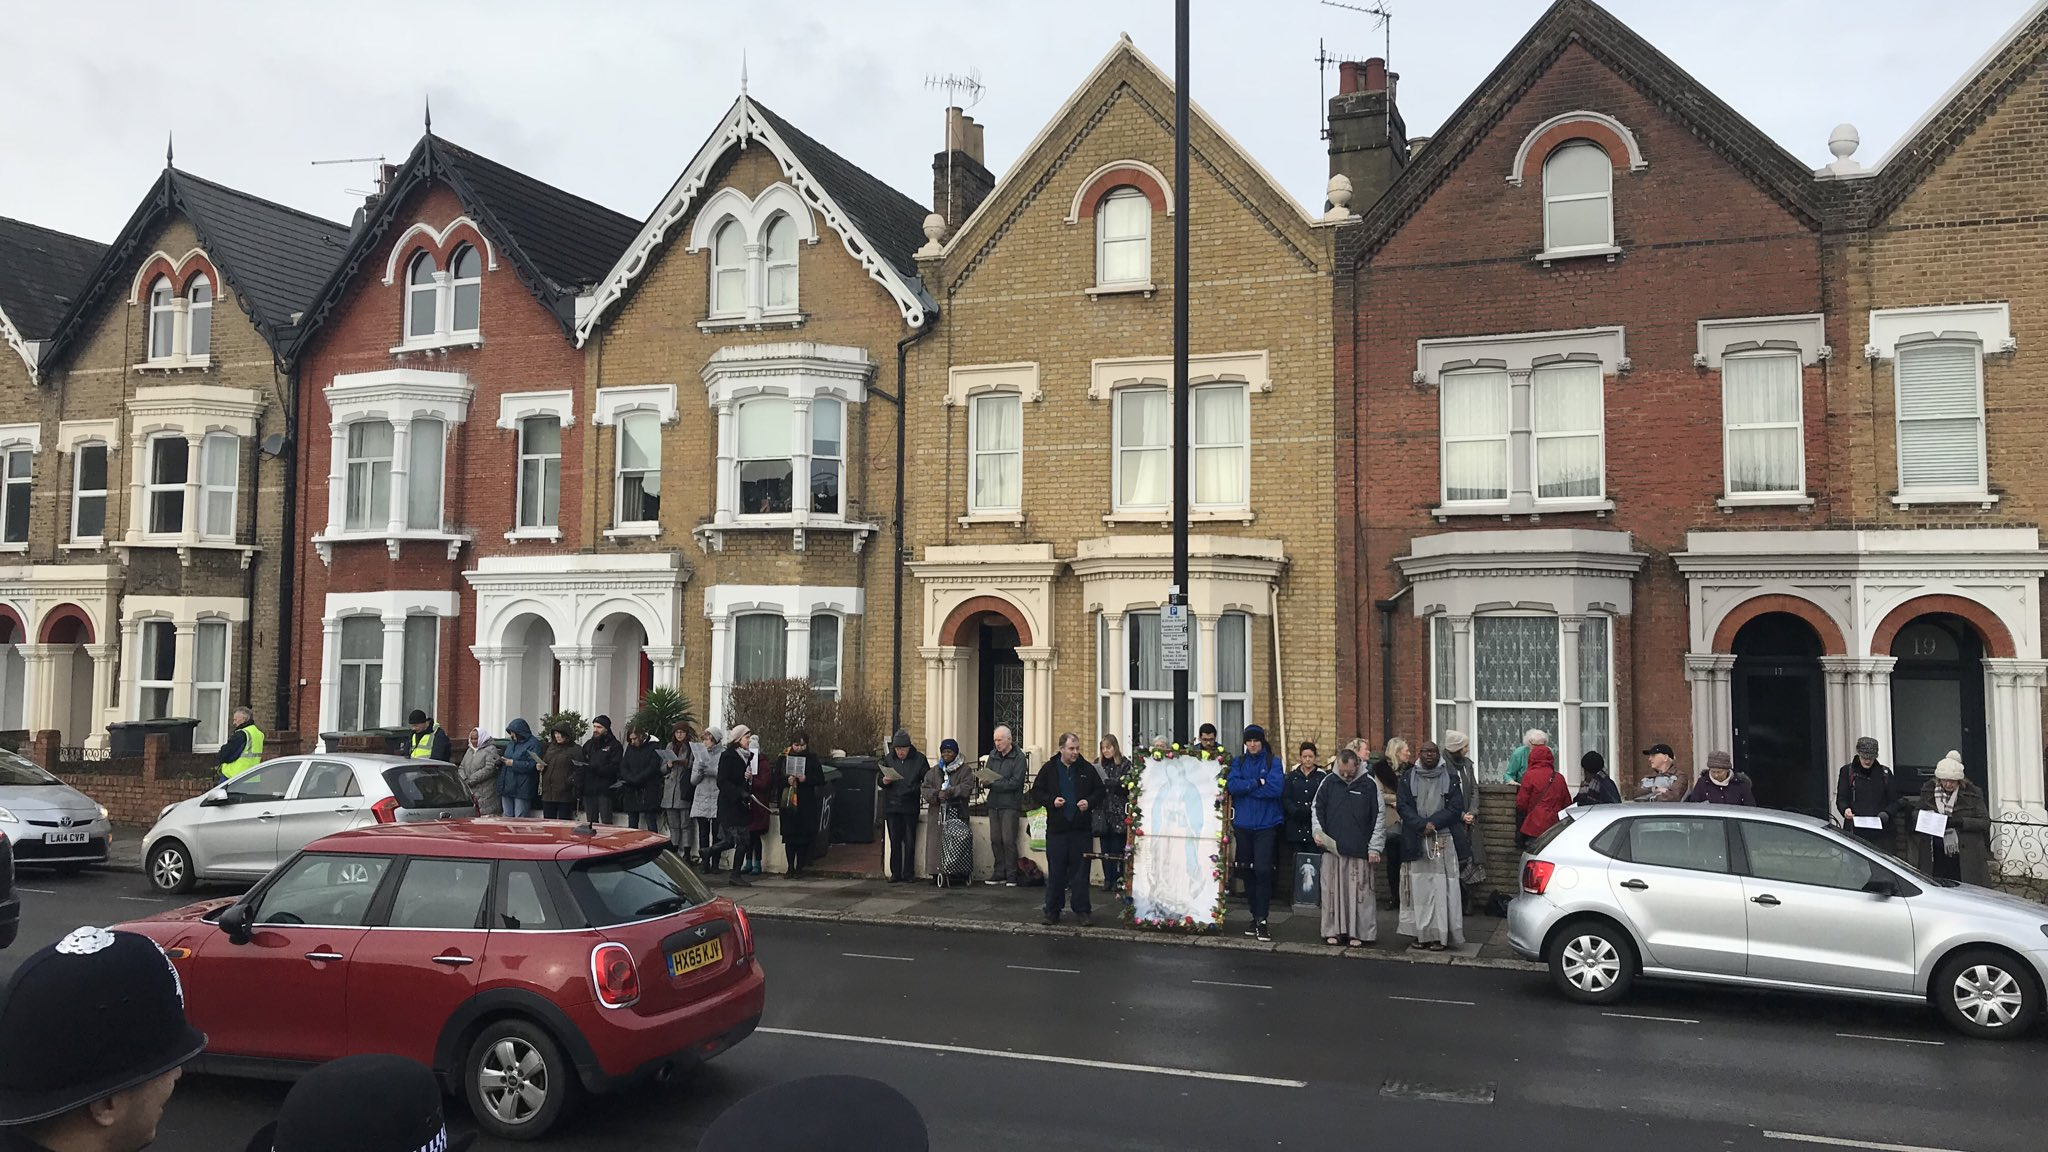 Finsbury Park abortion protests prove law must change